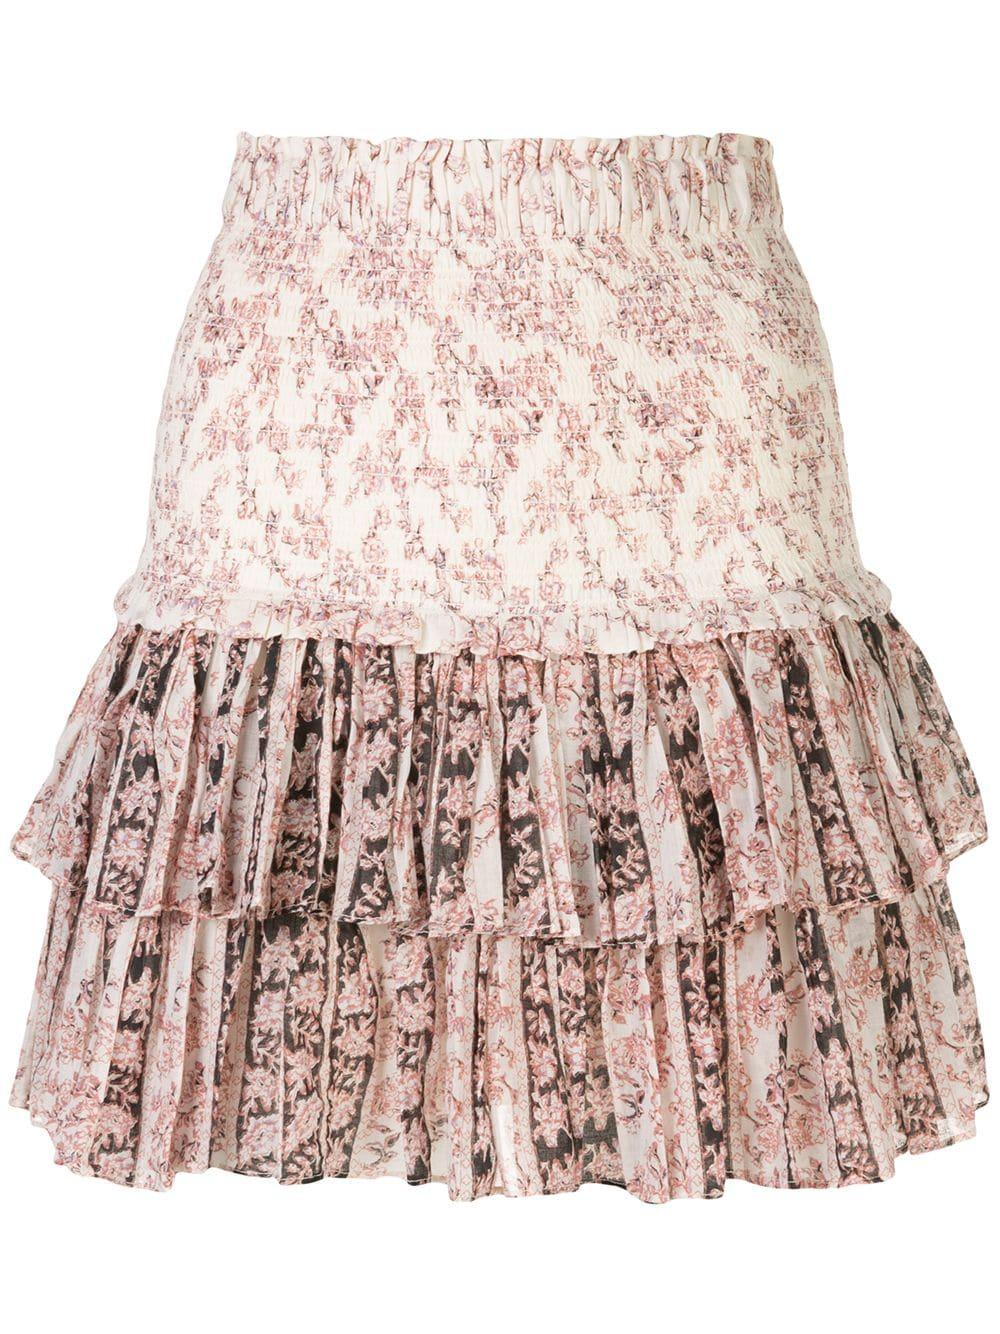 Tiered Printed Short Skirt